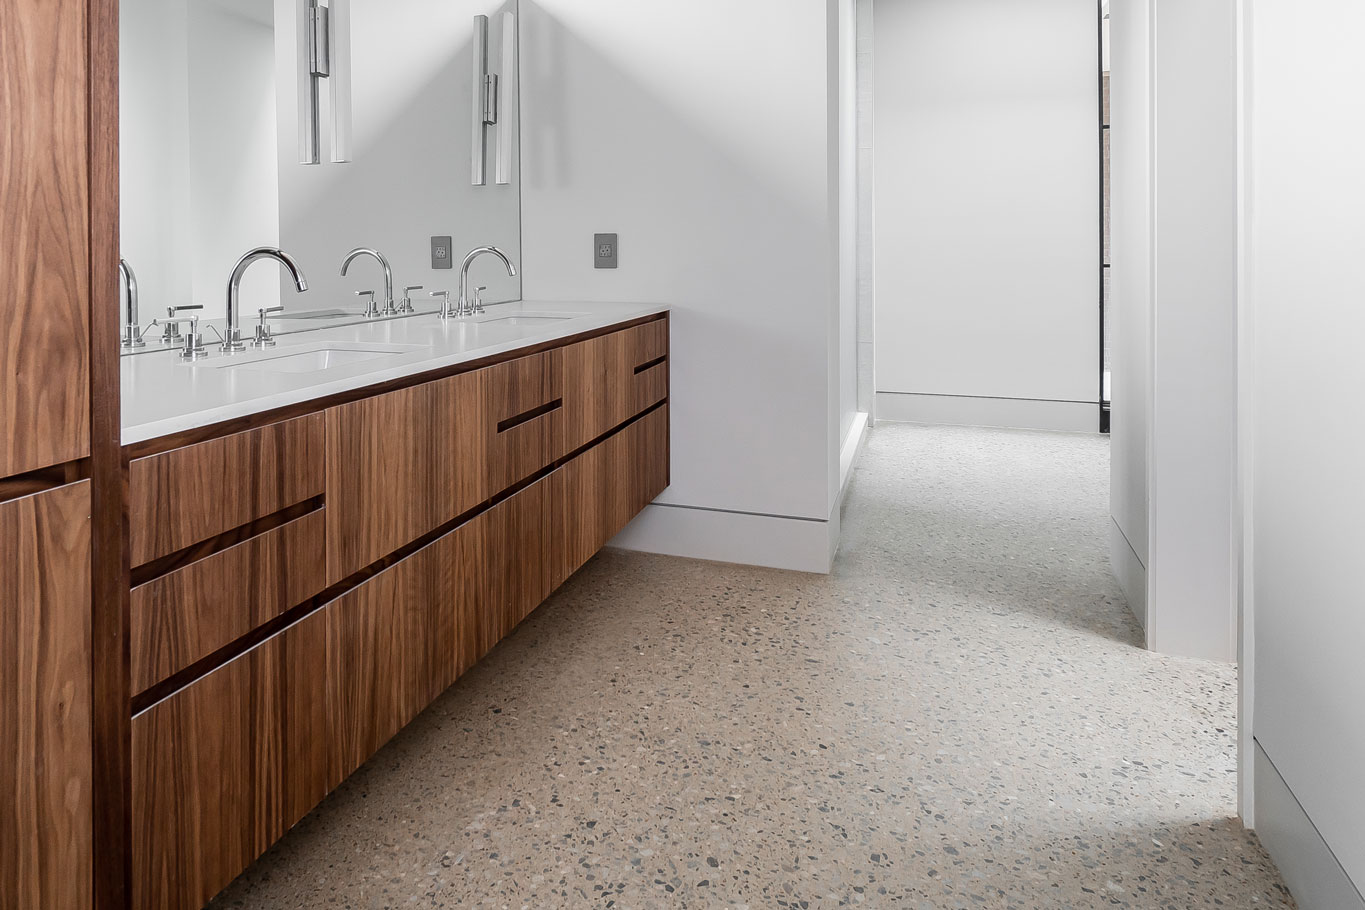 Polished-Concrete-Bathroom-Floor.jpg